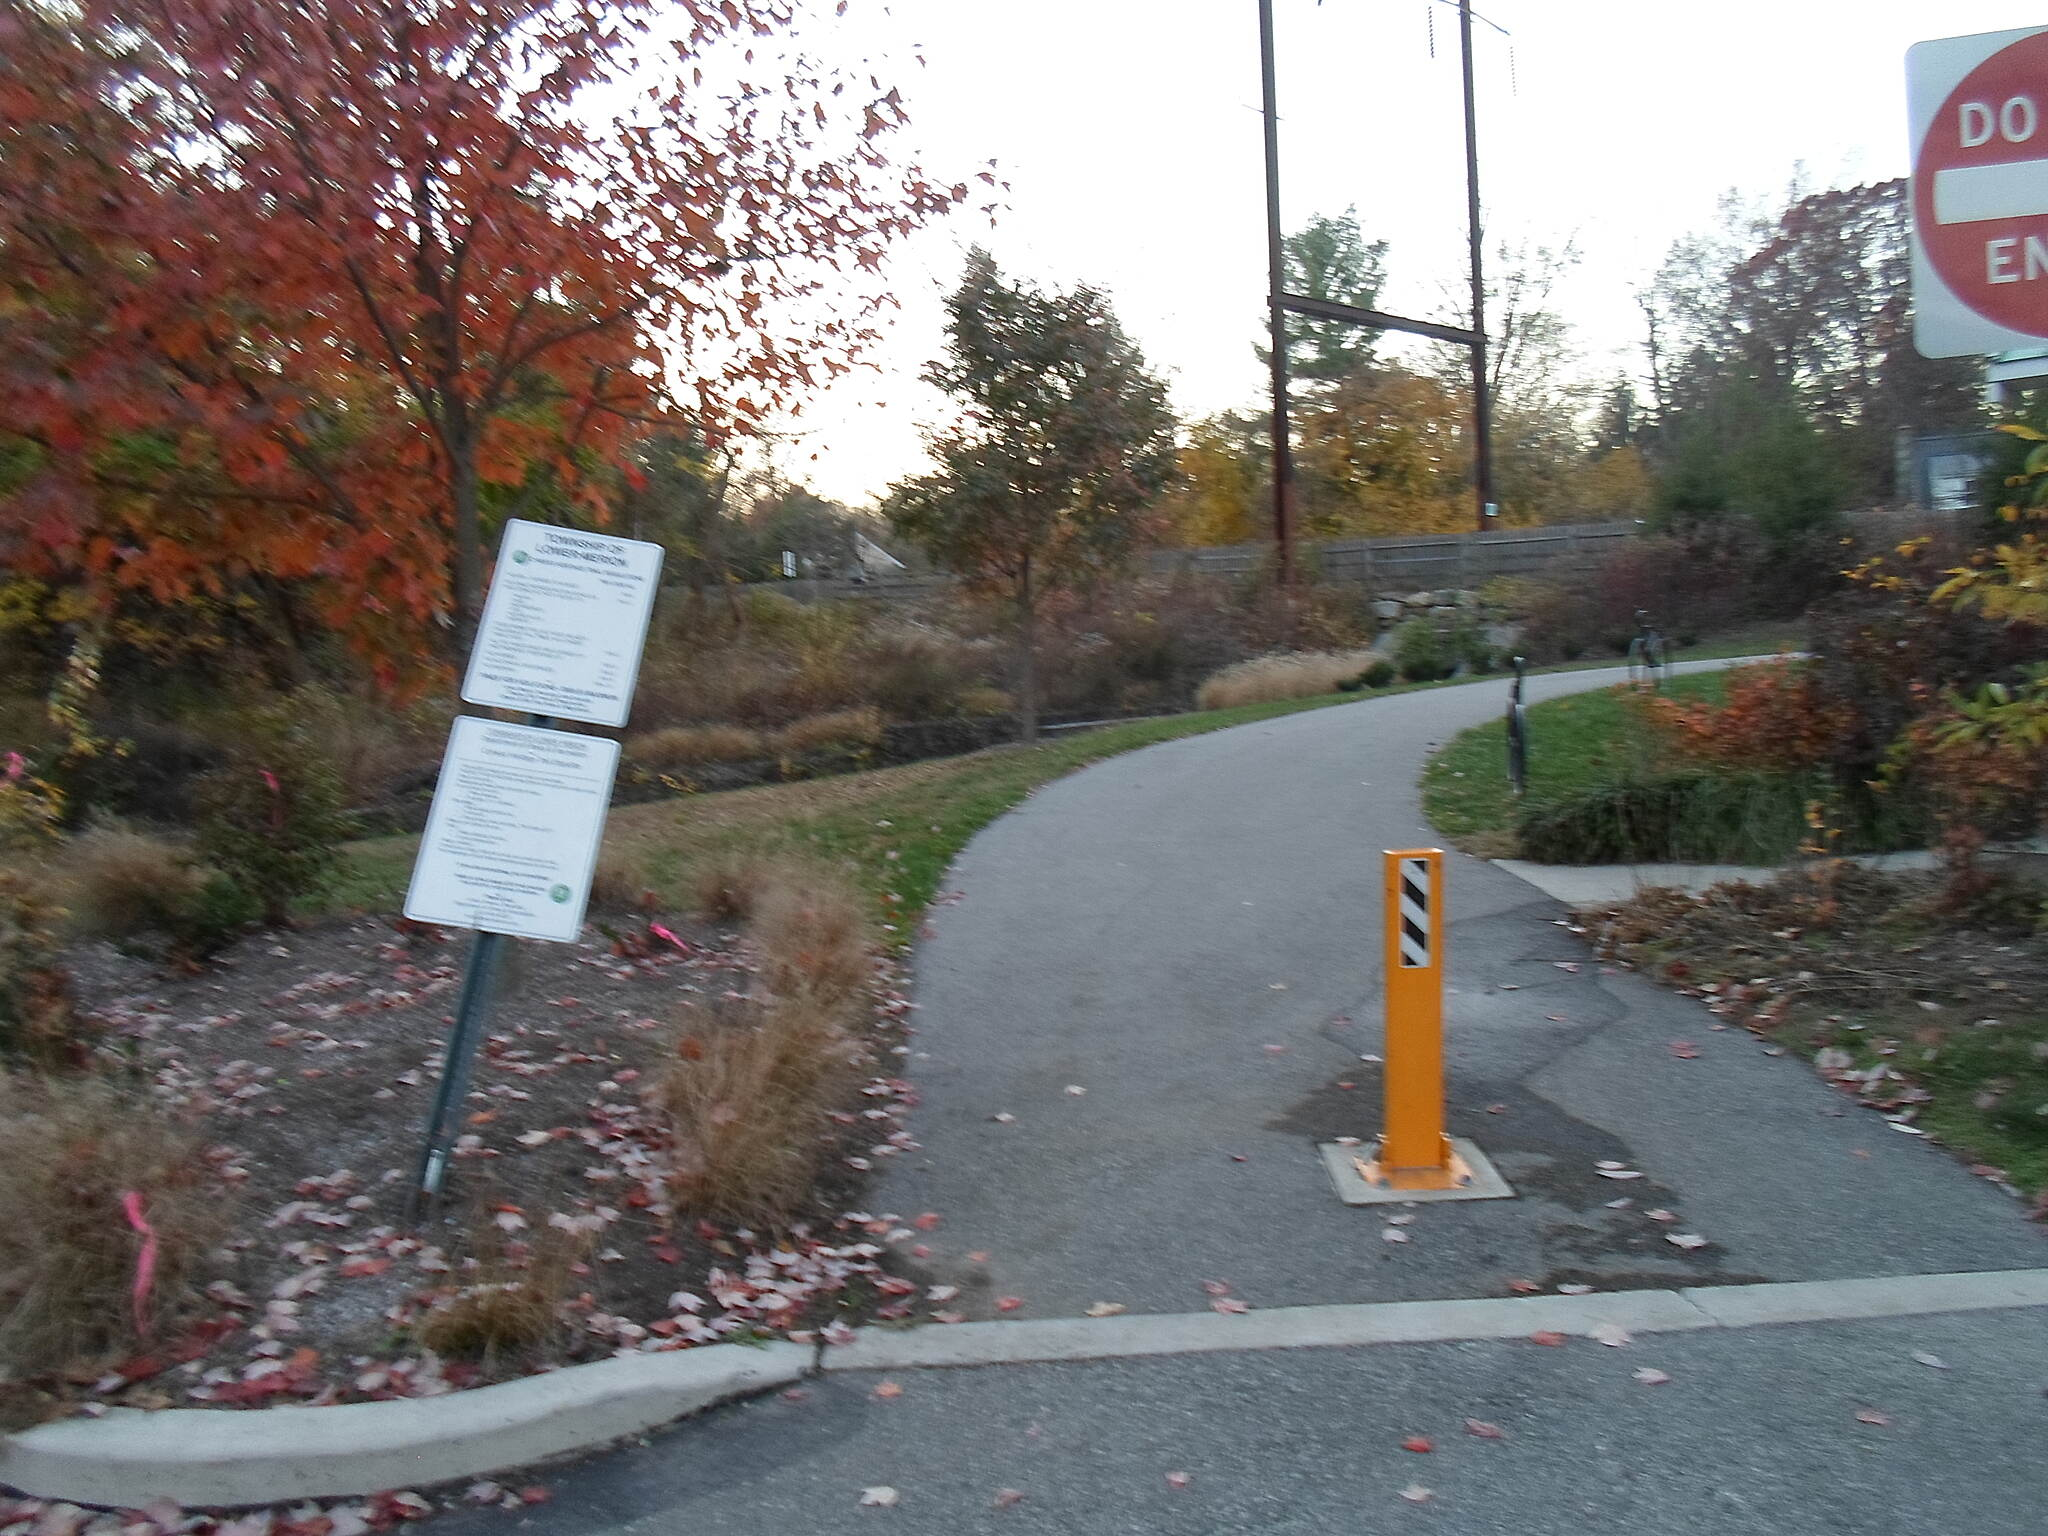 Cynwyd Heritage Trail Cynwyd Heritage Trail Access path to the trail from Lower Merion Township Park; taken Nov. 2015.